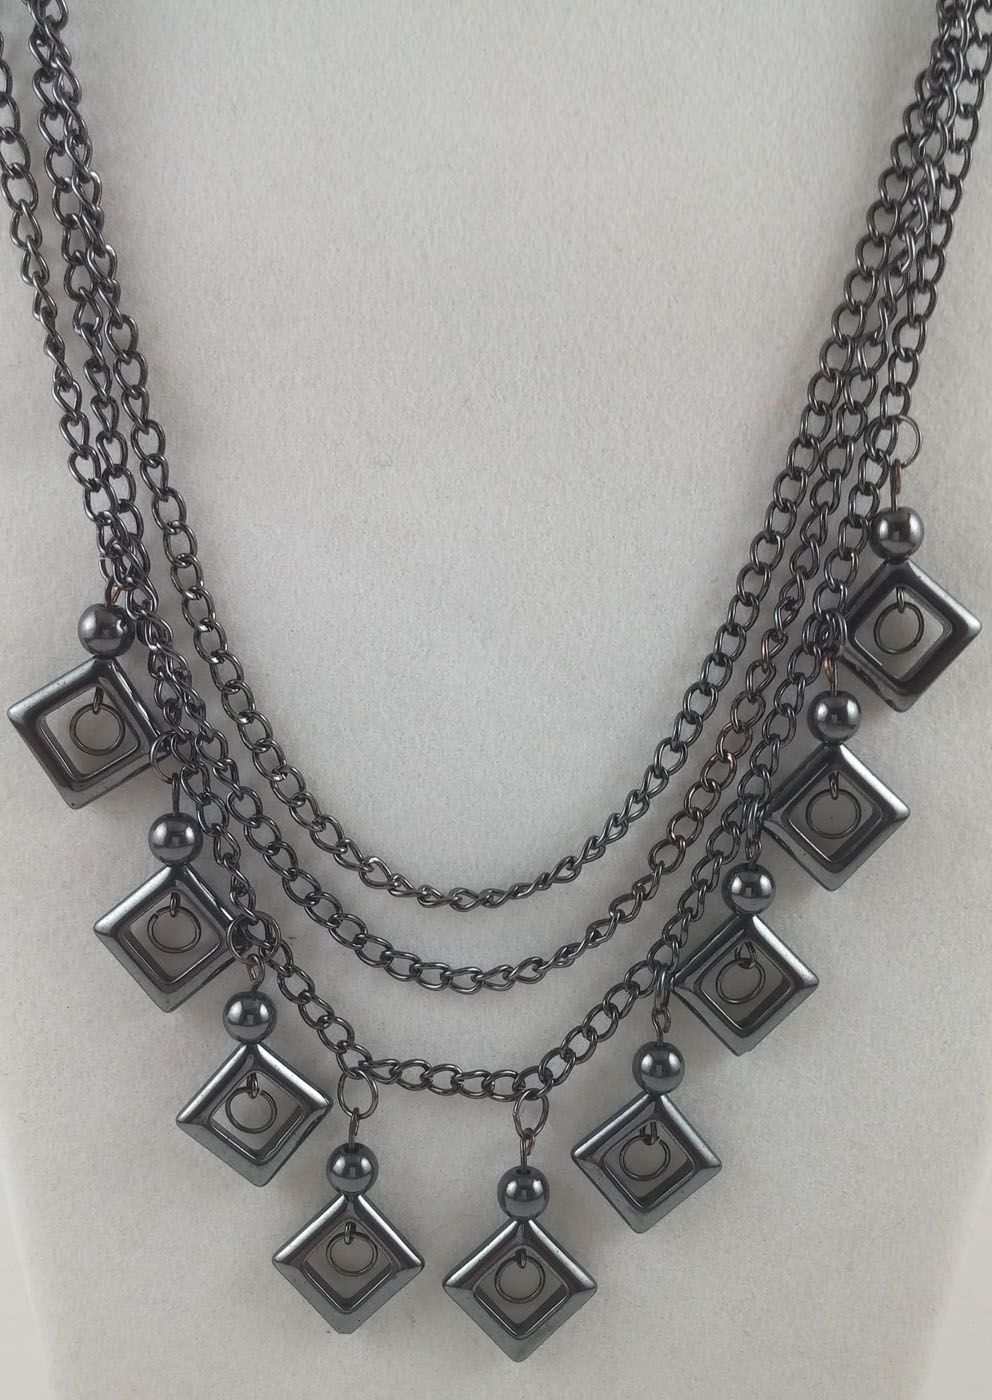 The chain here is preformed, you just cut to length of choice and connect w/ jumps and clasps.  The dangle charms were made using wire, beads, jumps and square components.  Has a beautiful drape to it!